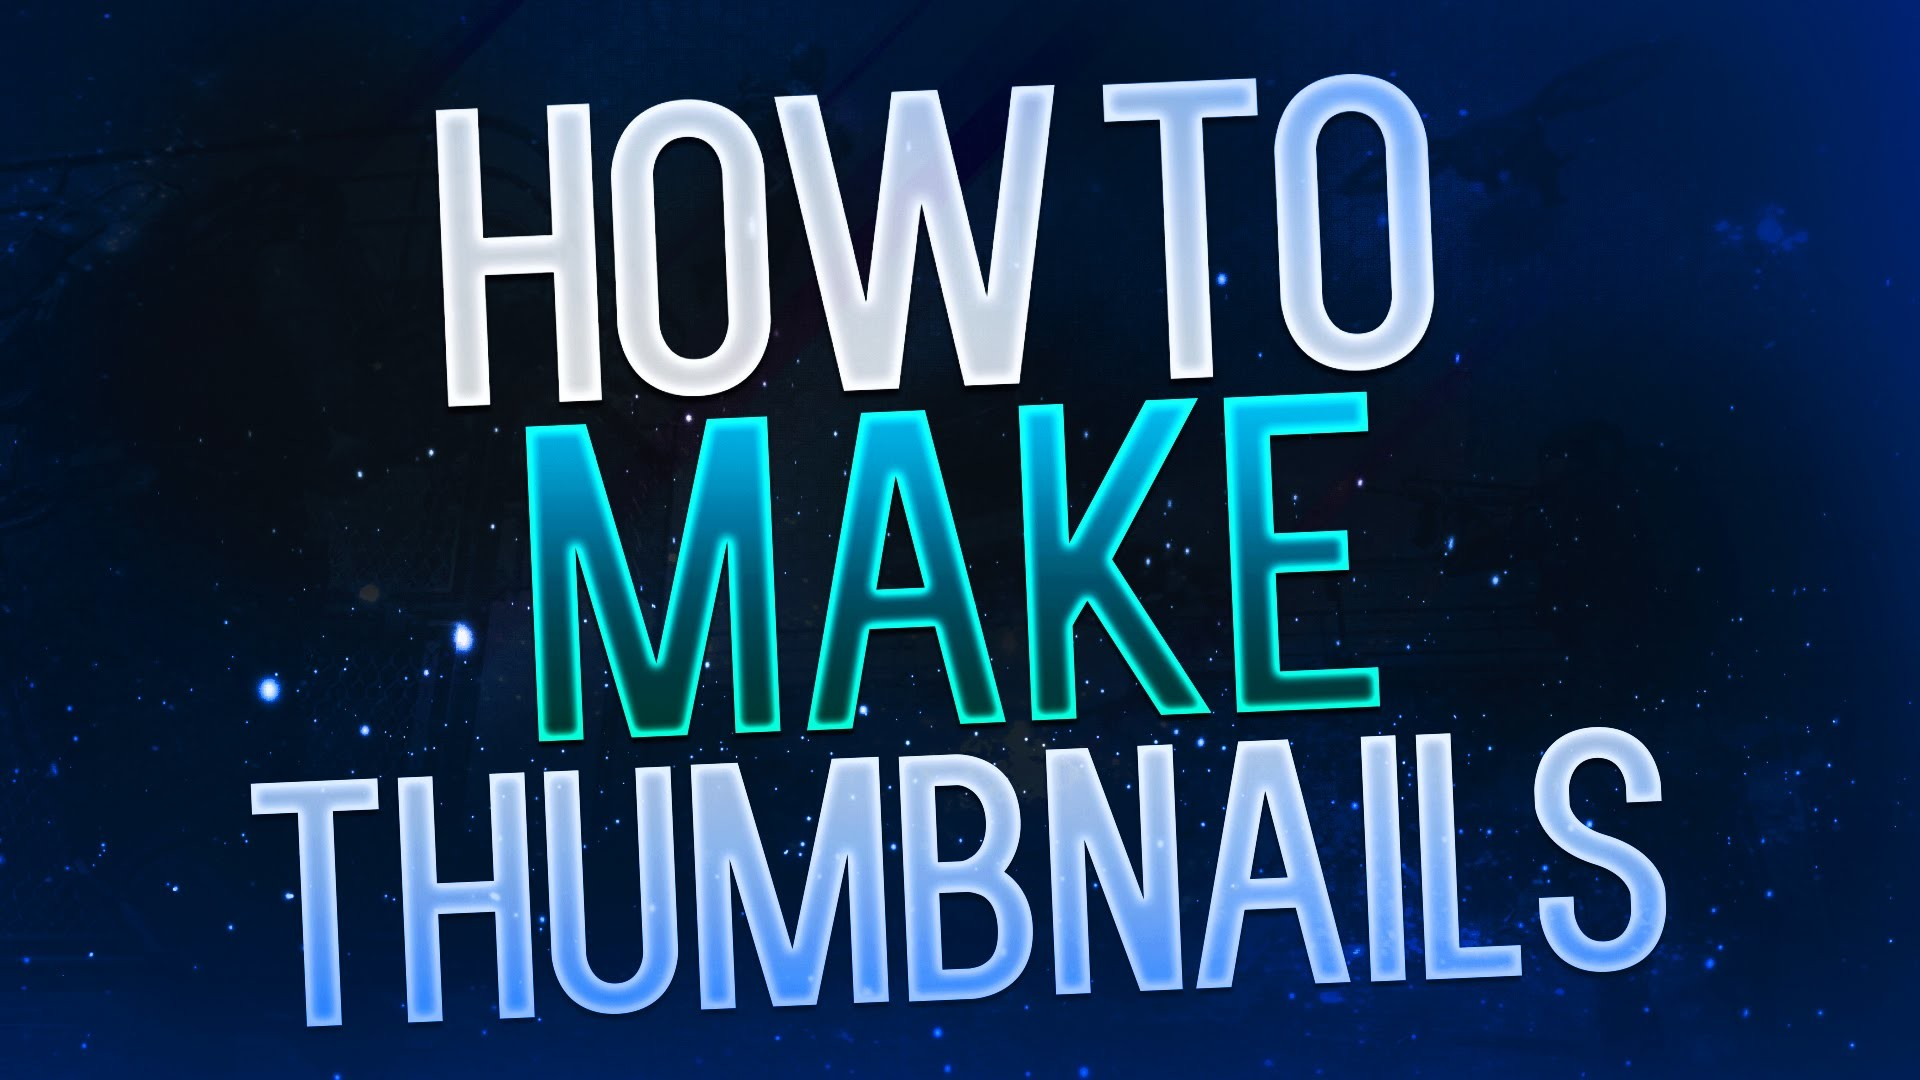 Make a wallpaper for youtube 88 images 1920x1080 how to make thumbnails for youtube videos 2015 photoshop thumbnail tutorial youtube baditri Image collections